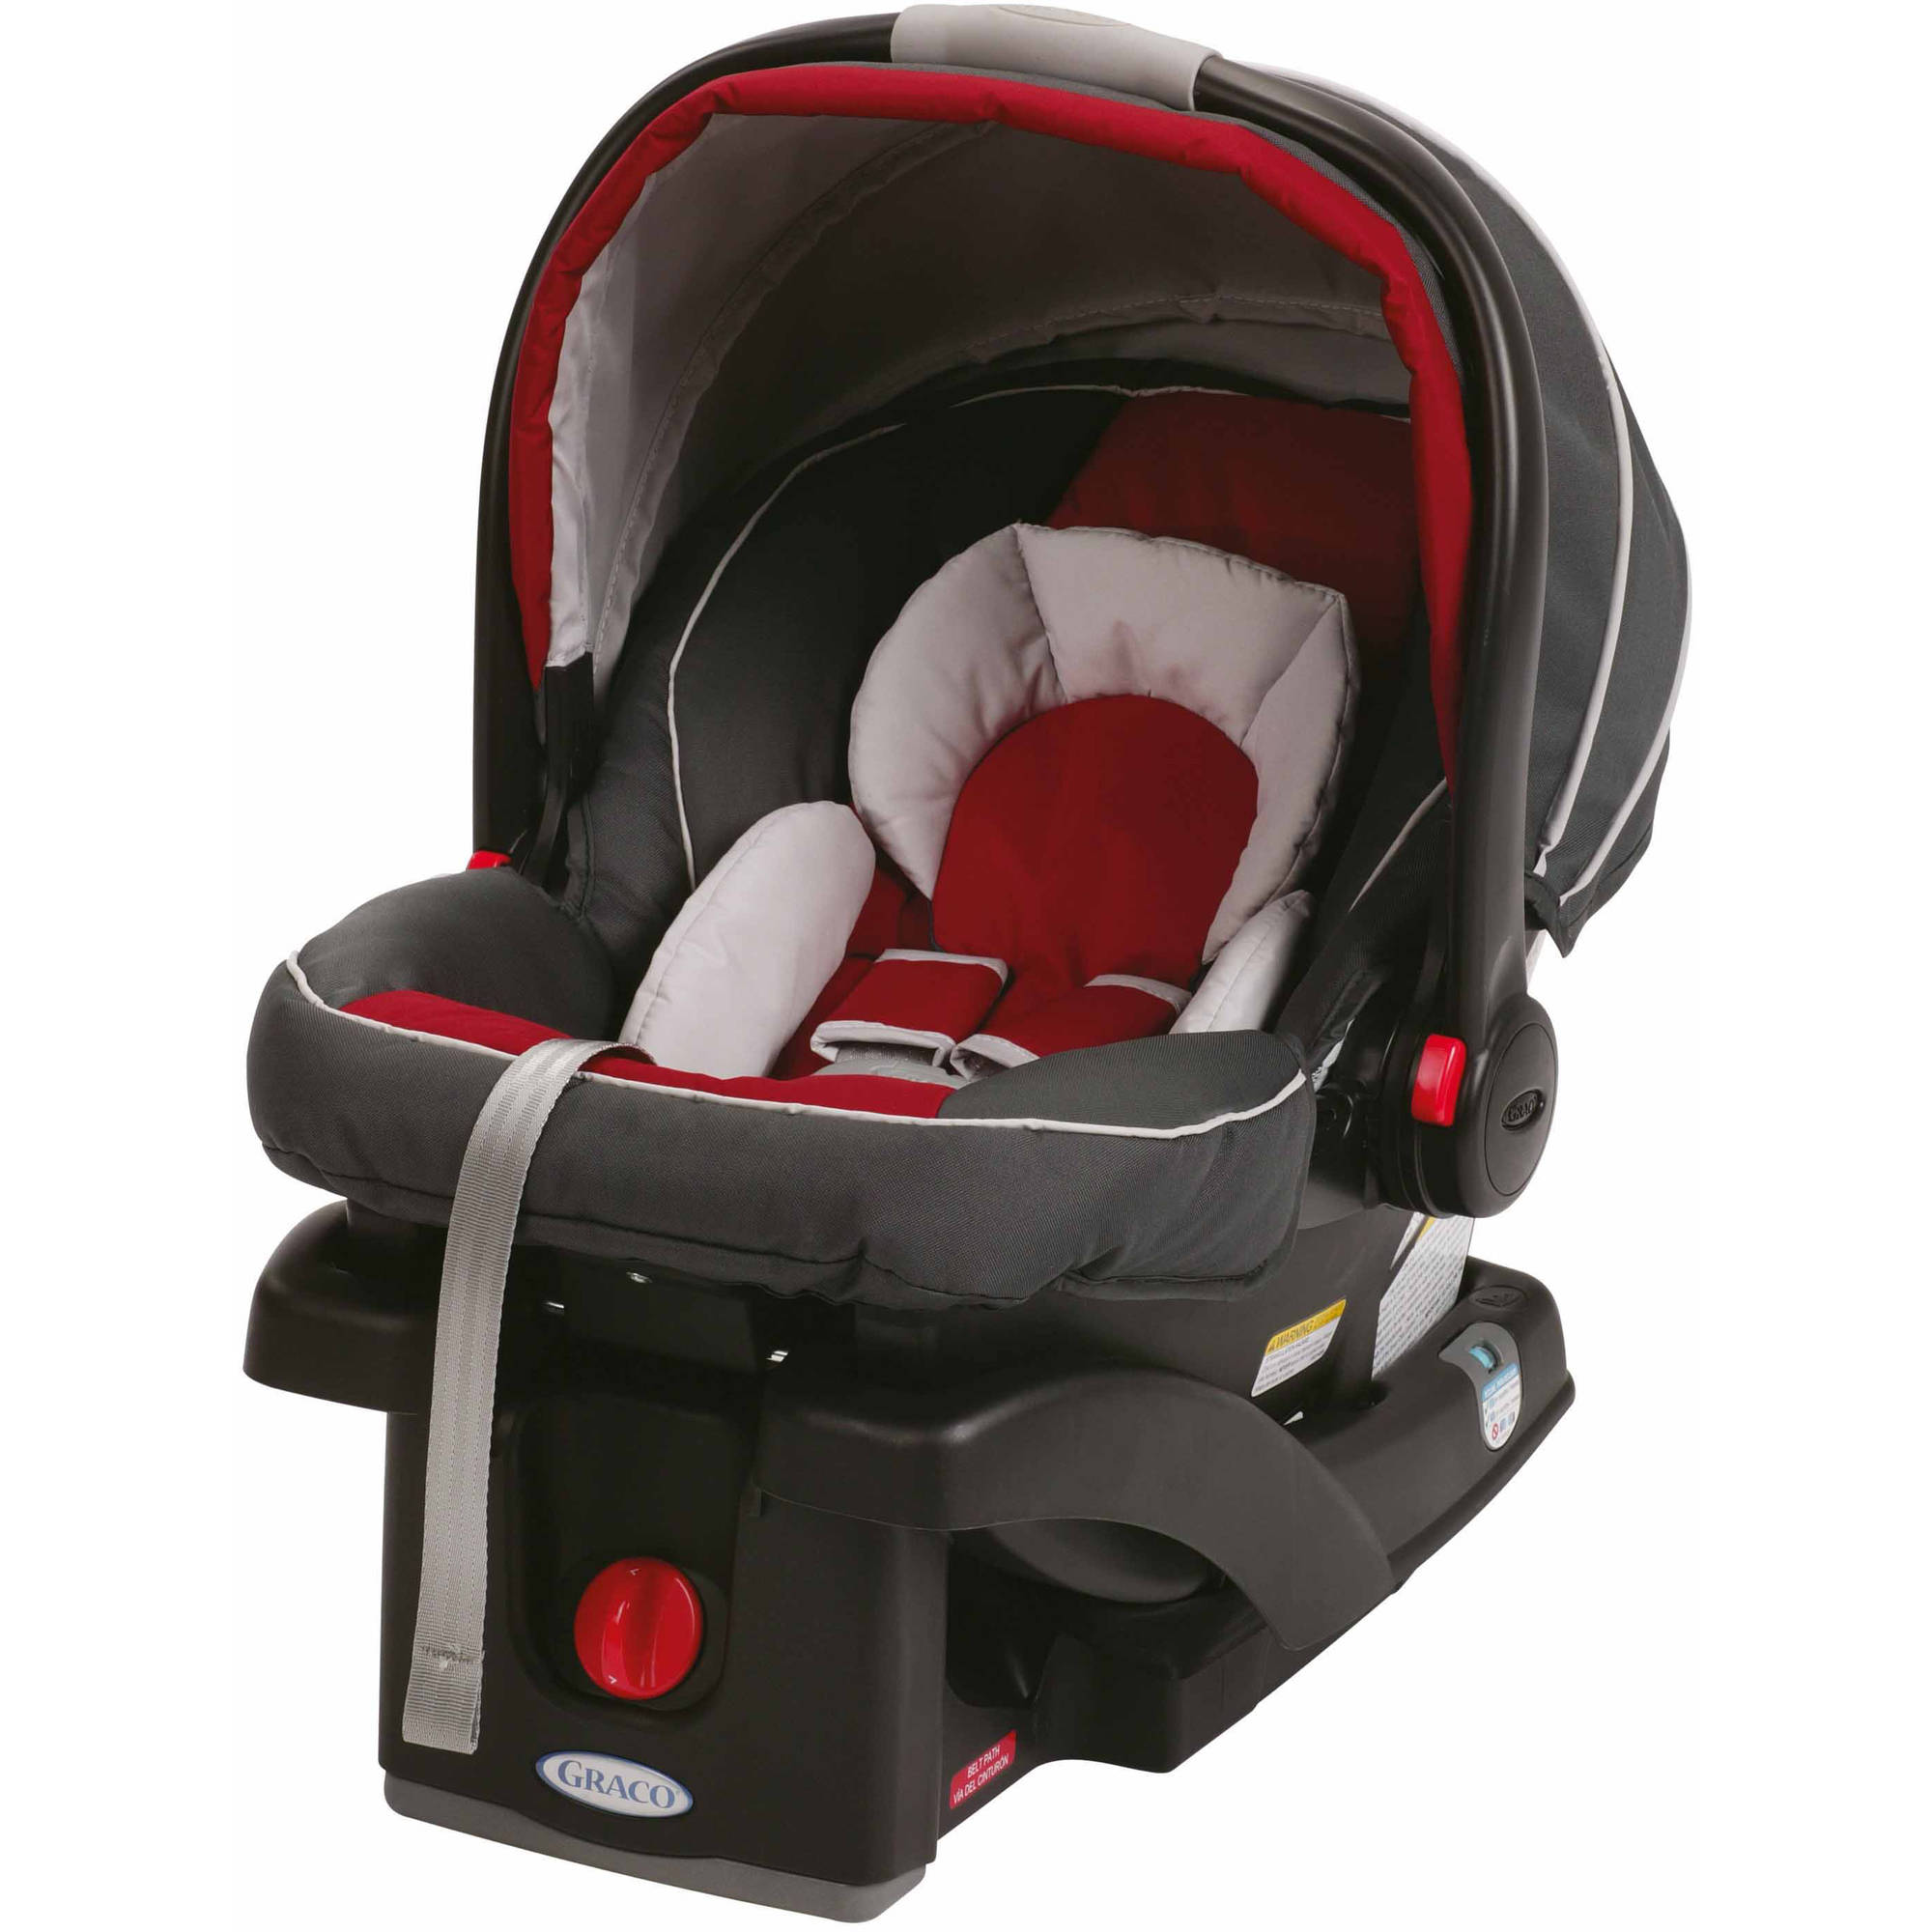 Graco SnugRide Click Connect 35 Infant Car Seat, Choose Your Pattern